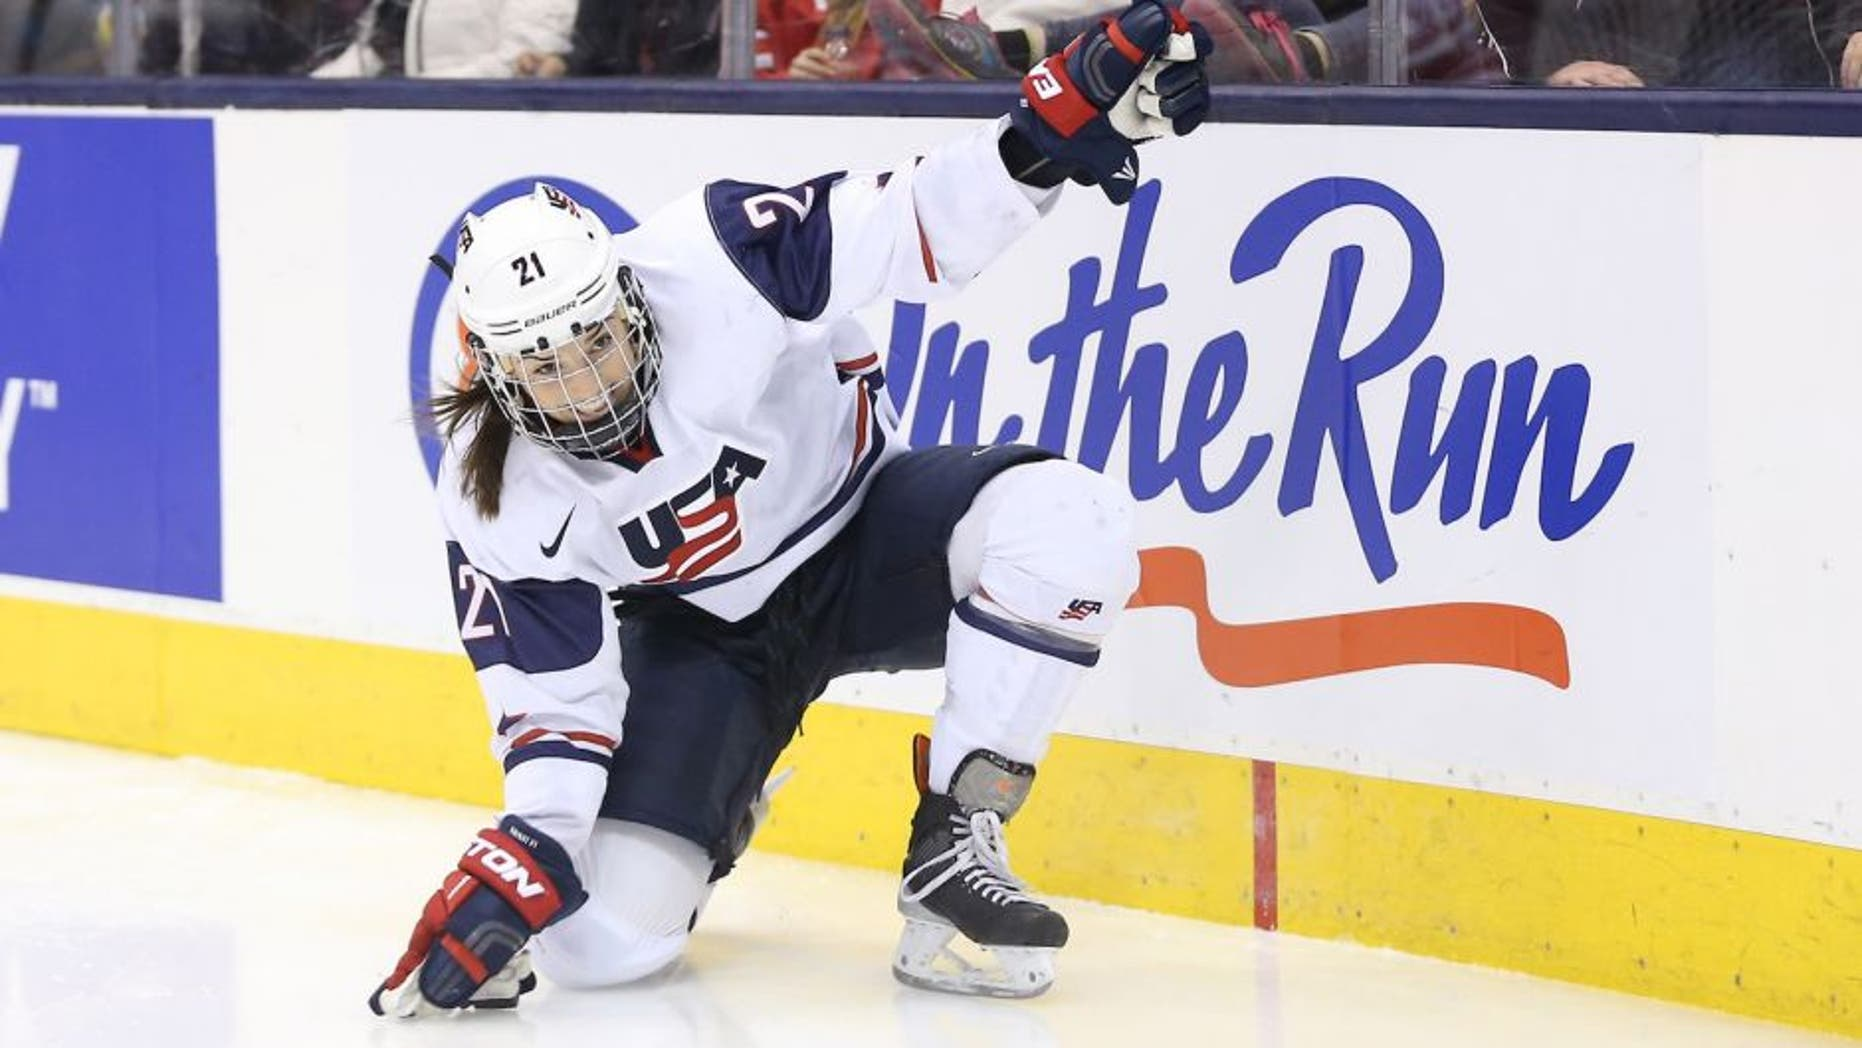 Dec 30, 2013; Toronto, Ontario, Canada; USA left wing Hilary Knight (21) celebrates after scoring a goal against Canada during the second period in an exhibition hockey game at Air Canada Centre. USA won 3-2. Mandatory Credit: Tom Szczerbowski-USA TODAY Sports